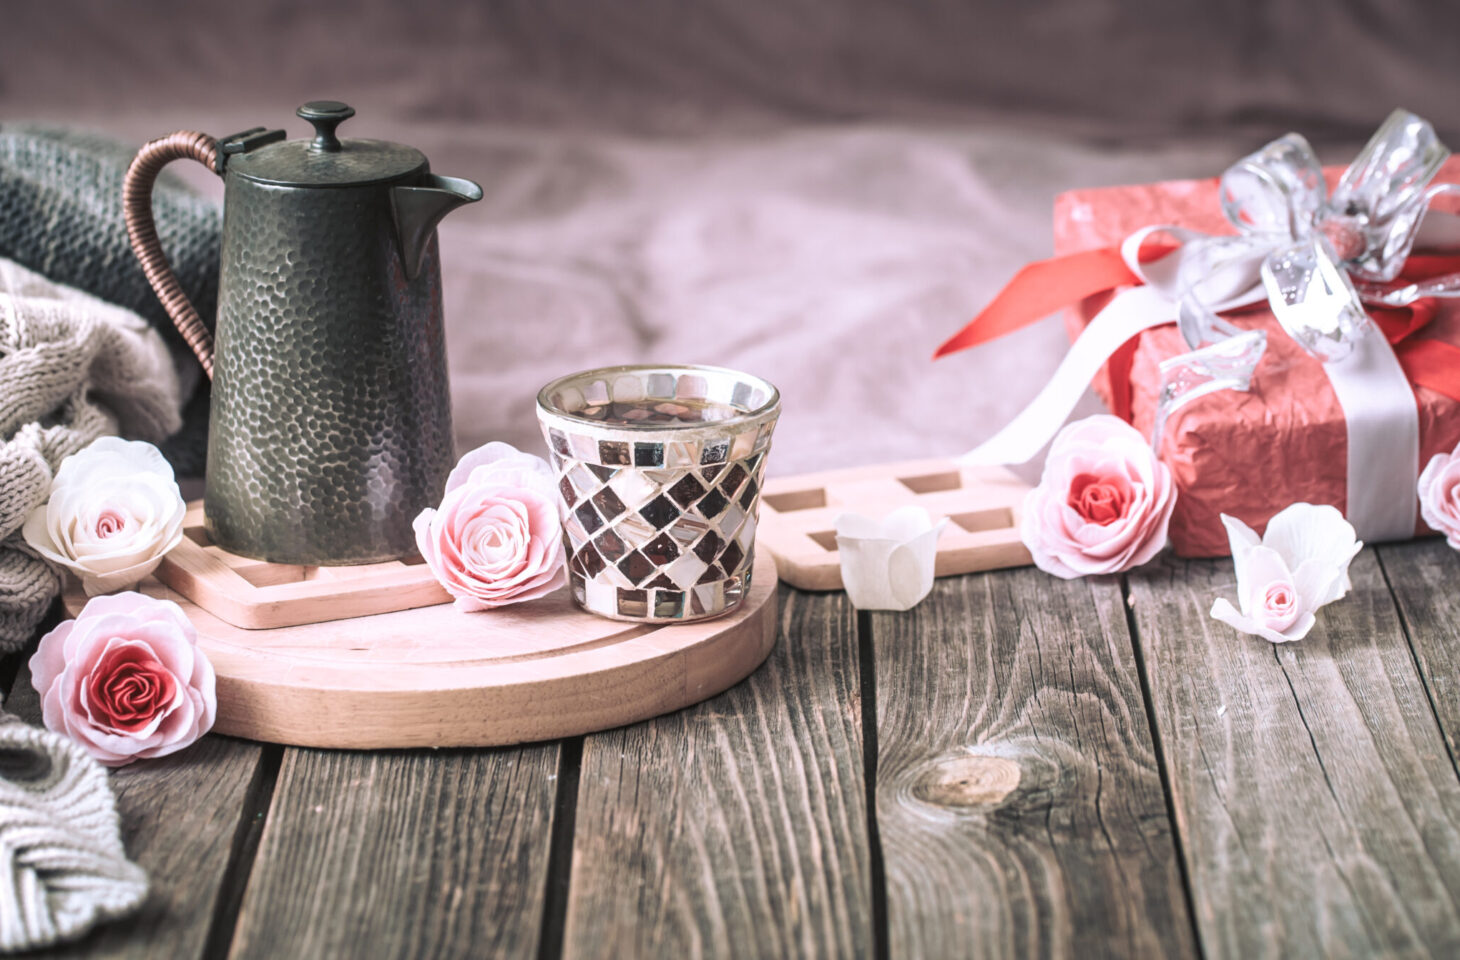 Concept for Valentine's Day or Mother's Day, a festive still life with tea and a teapot on a wooden table in the living room at home